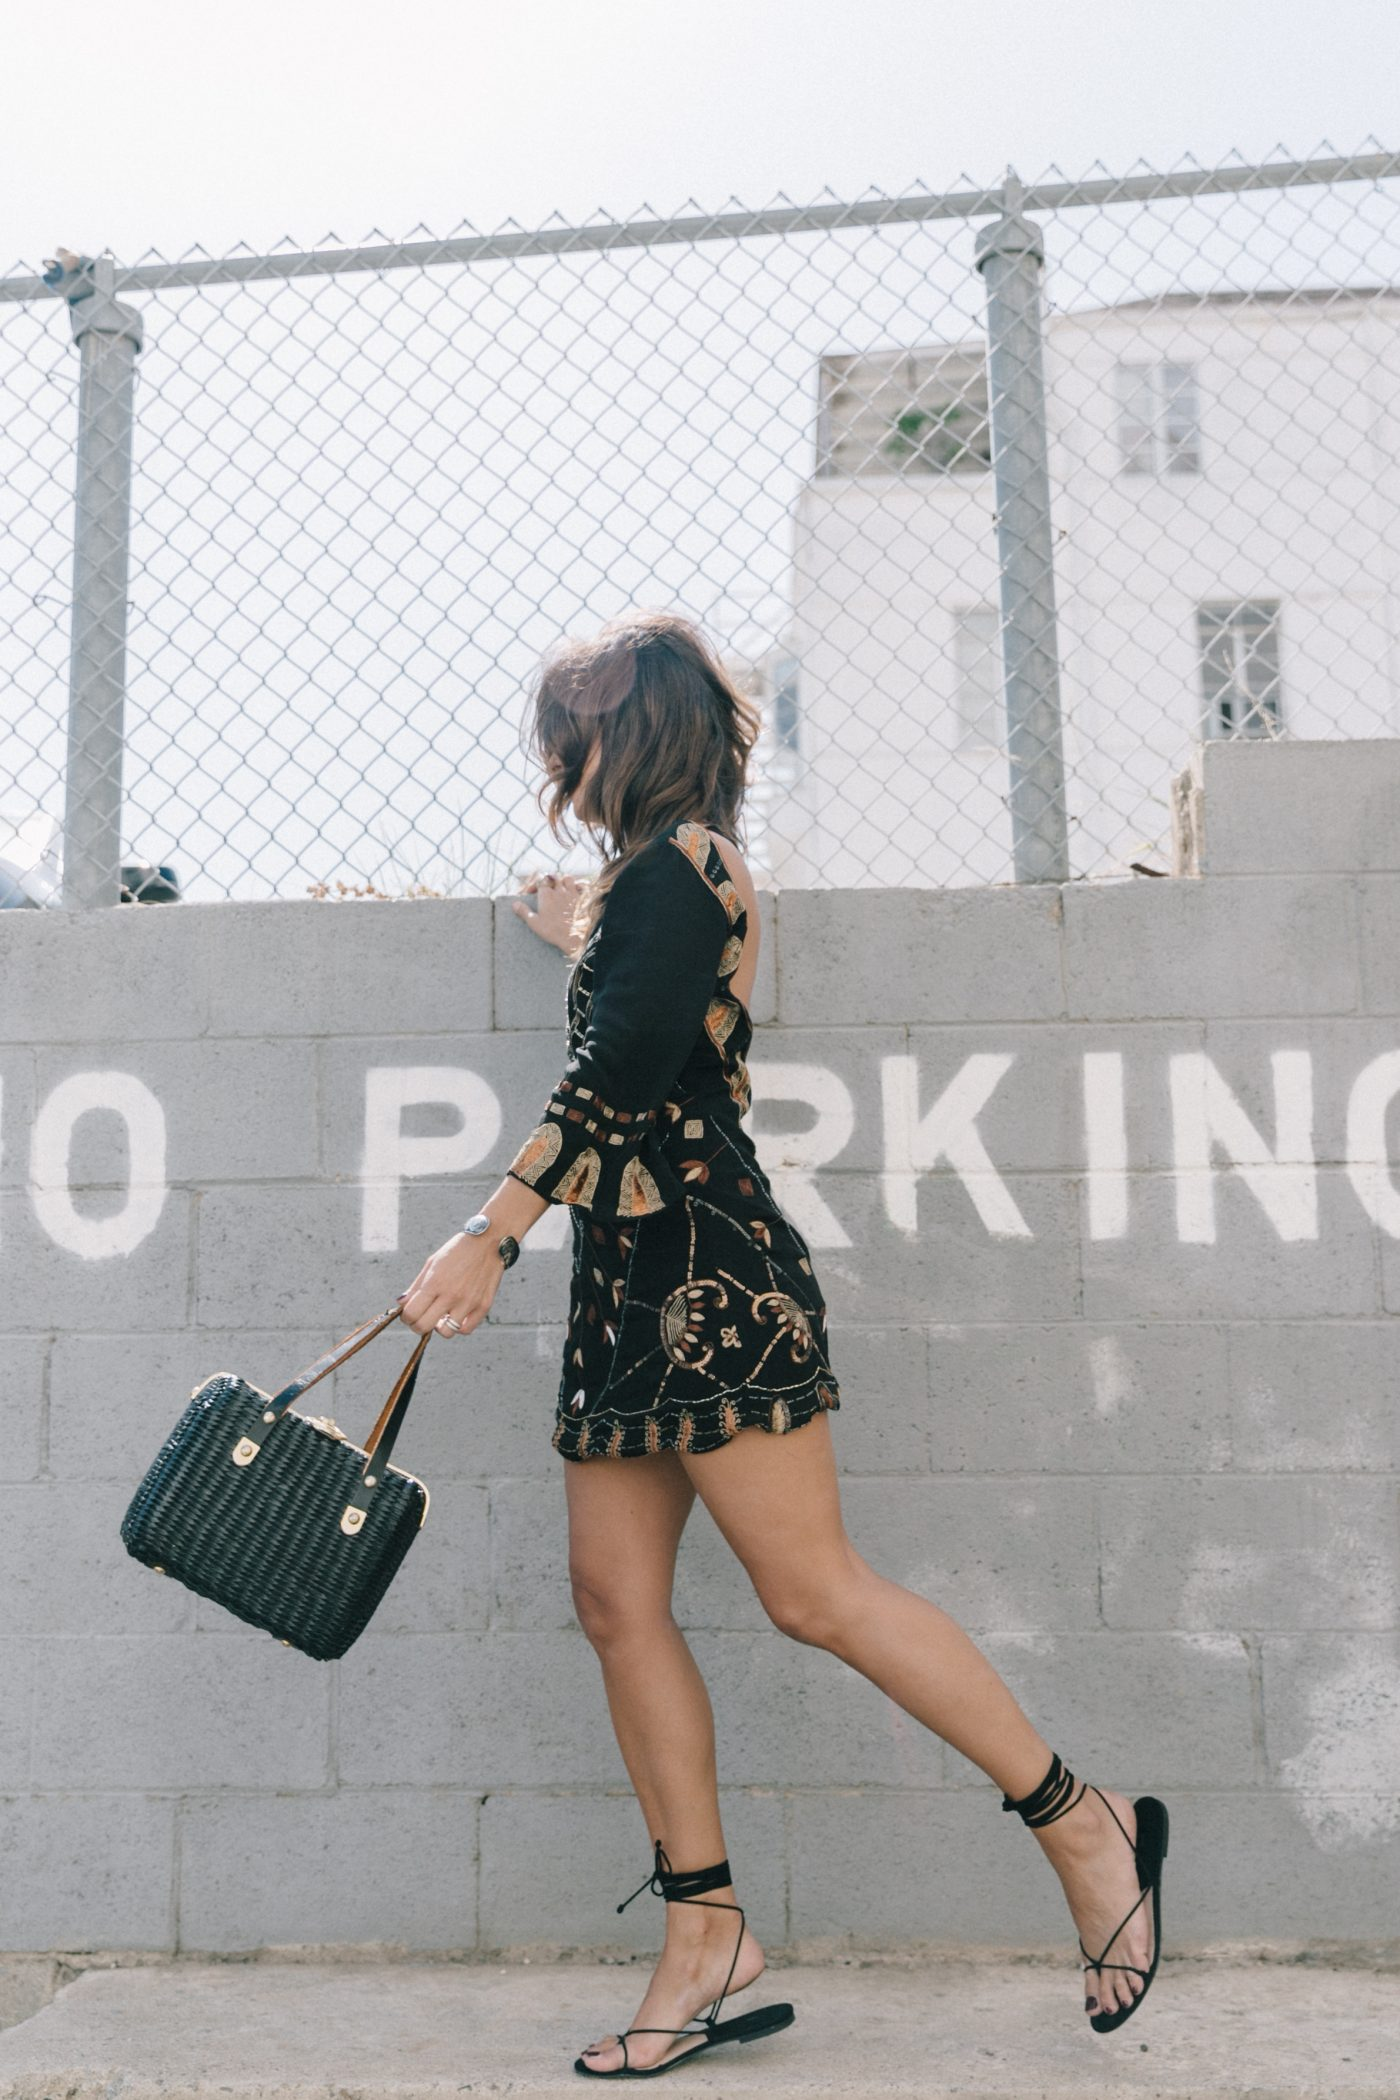 Boho_Dress-Jens_Pirate_Booty-Black_Beaded_Dress-Lace_Up_Sandals-Los_Angeles-Outfit-Collage_Vintage-54